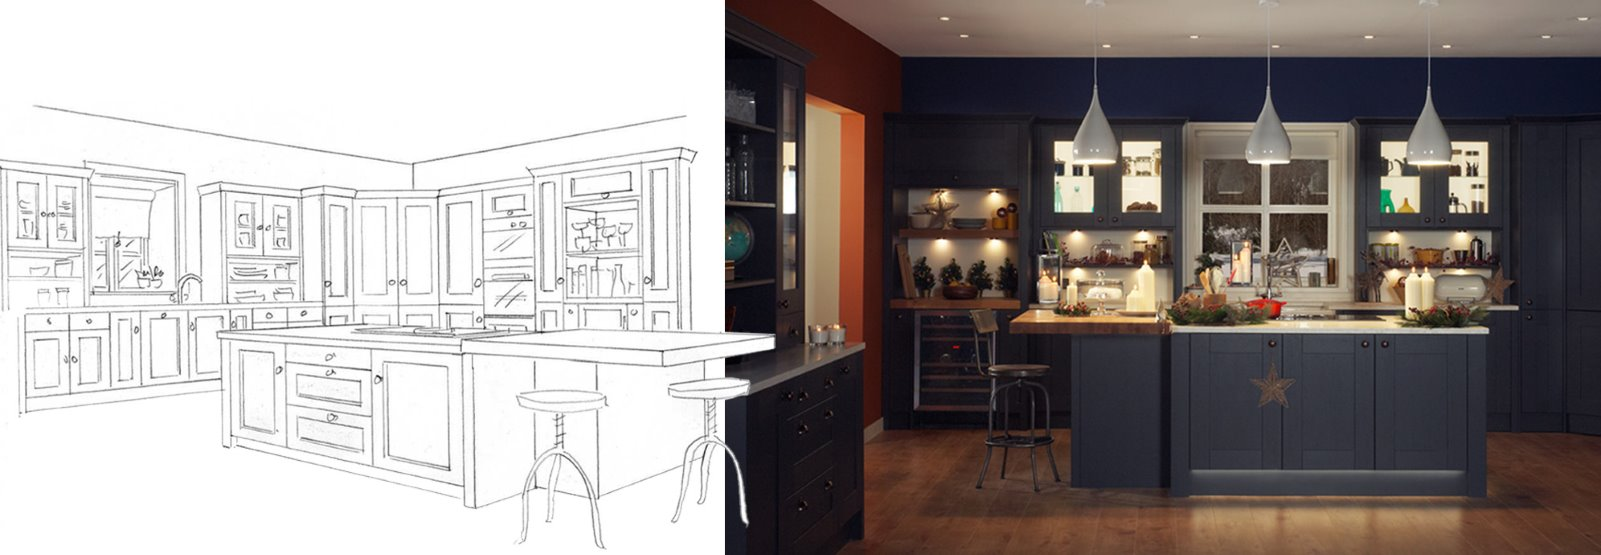 studio set design sketch kitchen